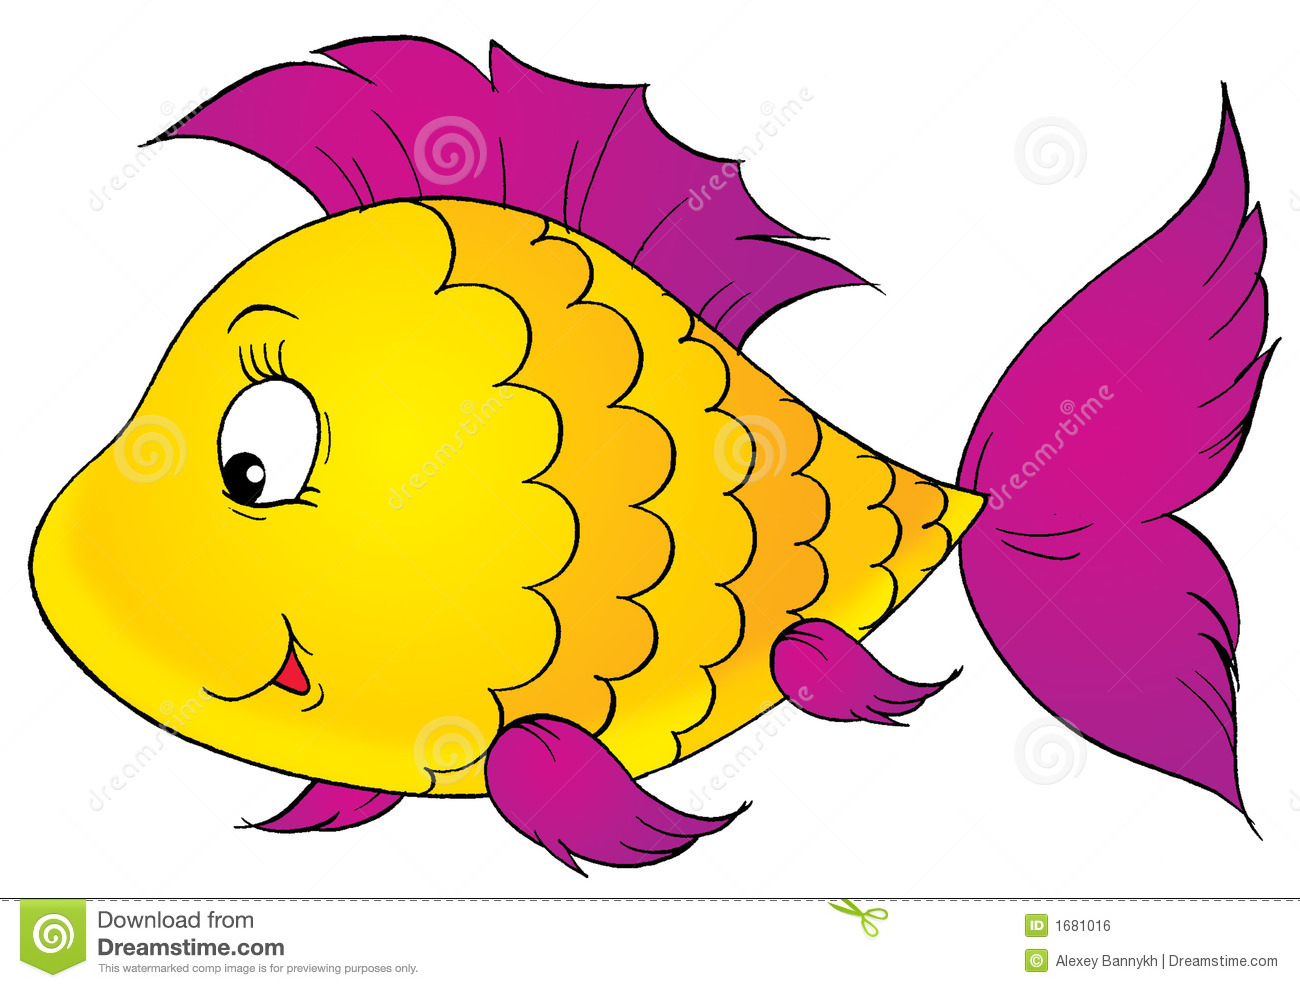 coral fish royalty free stock image image 1681016